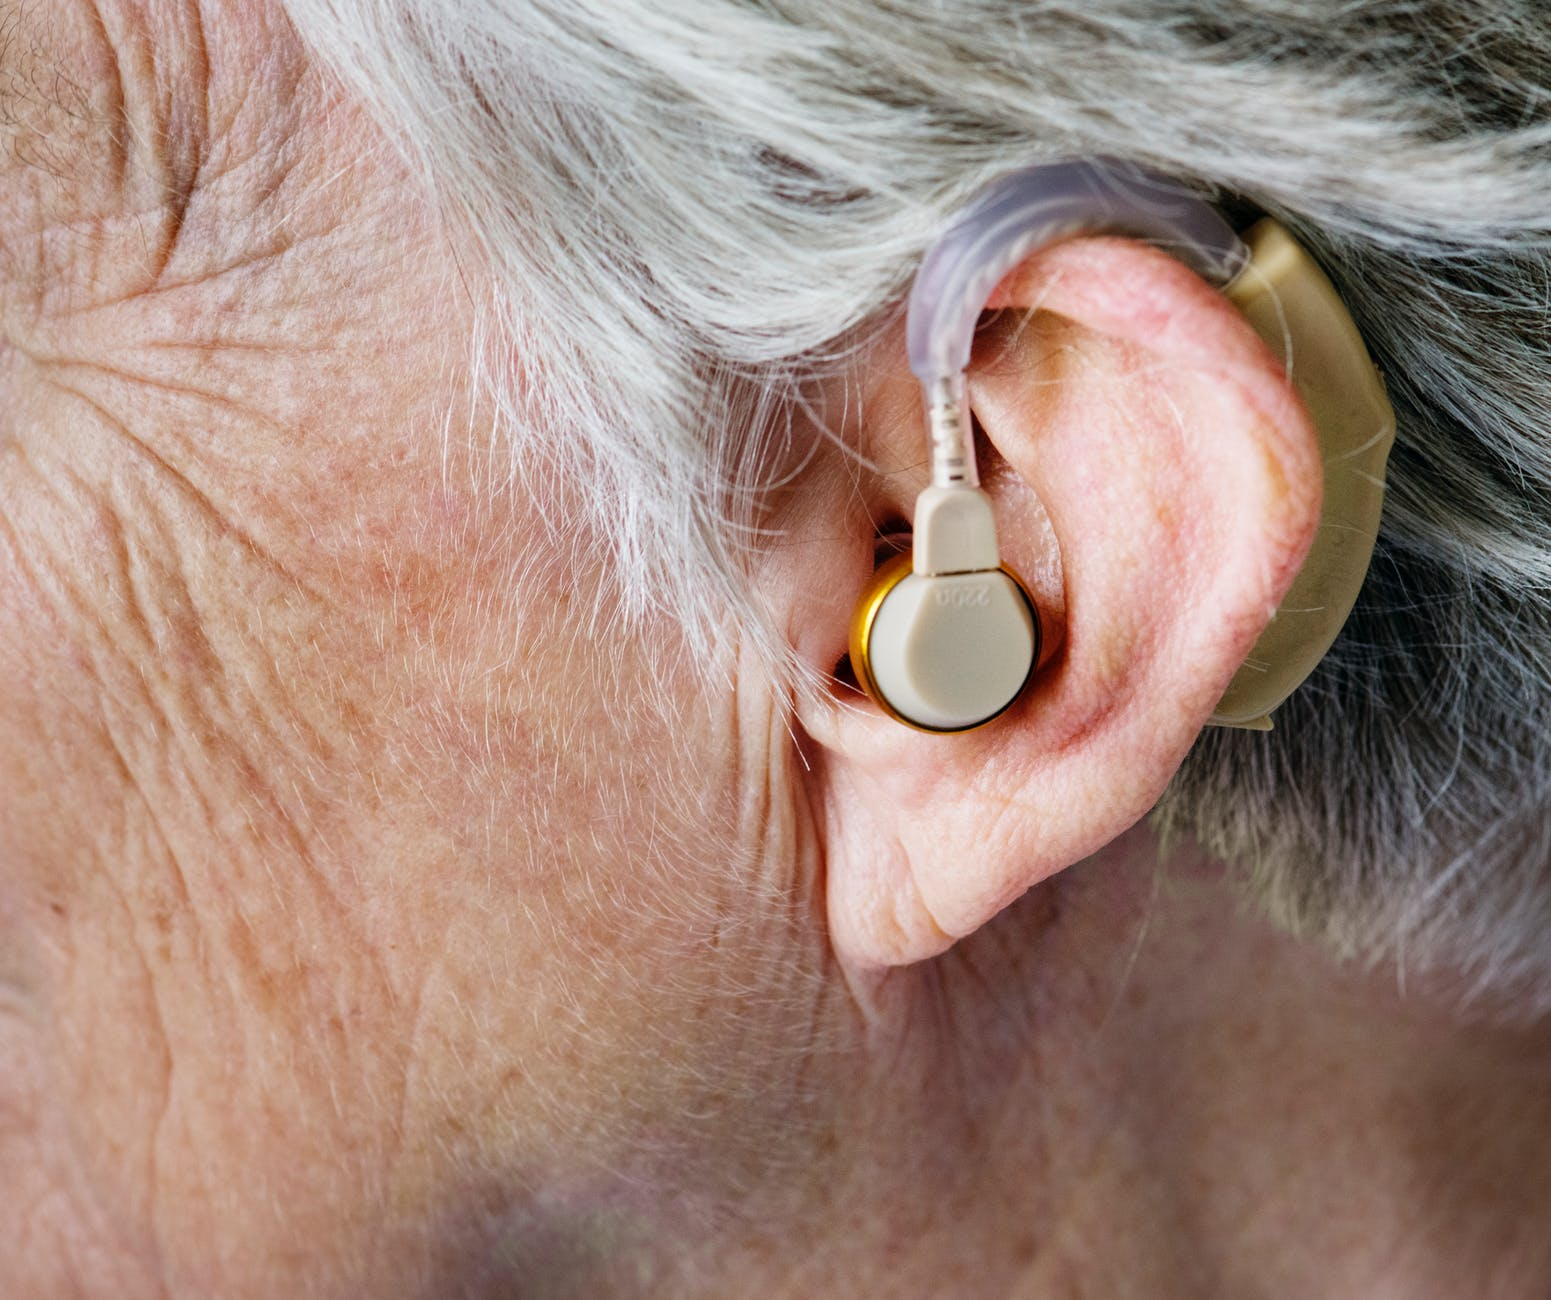 person wearing hearing aid